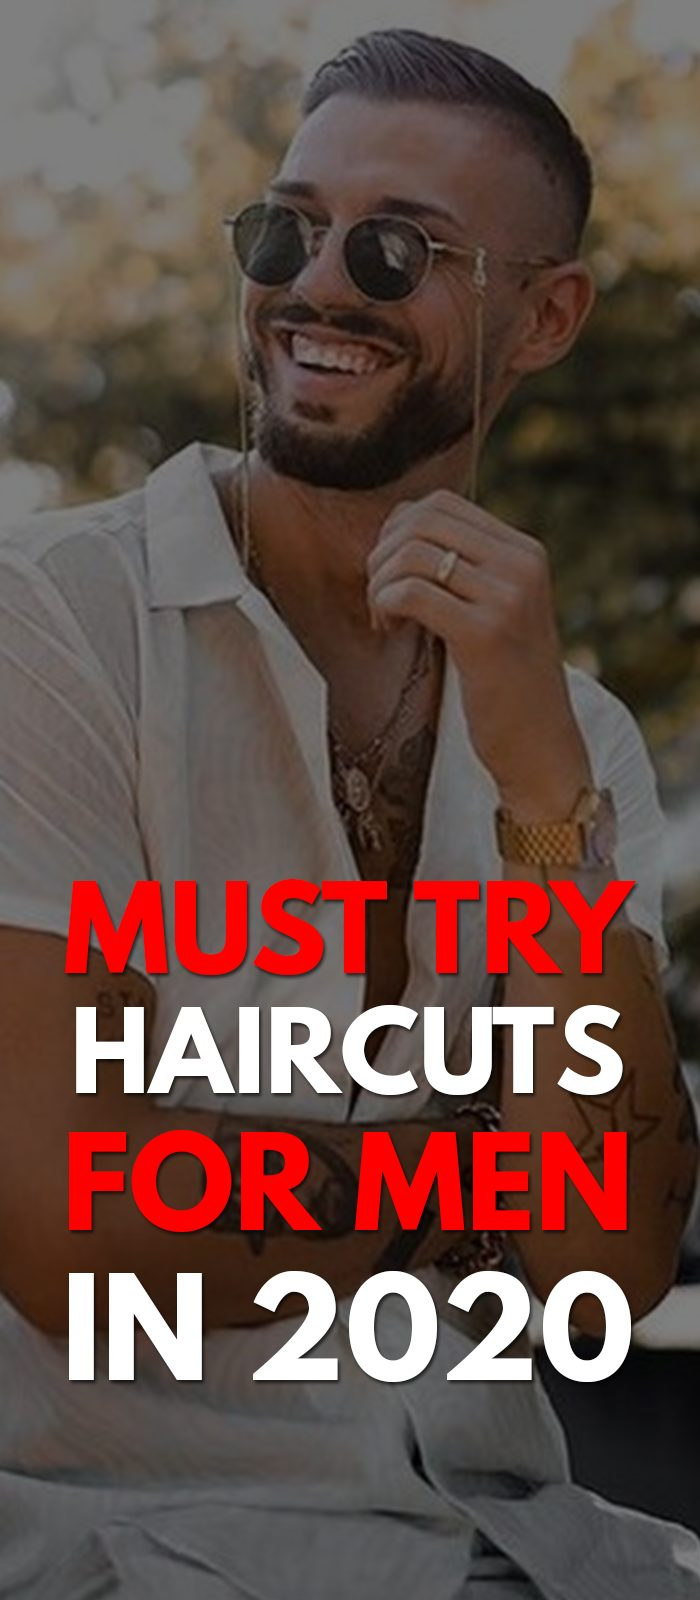 5 Must Try Haircuts for Men in 2020